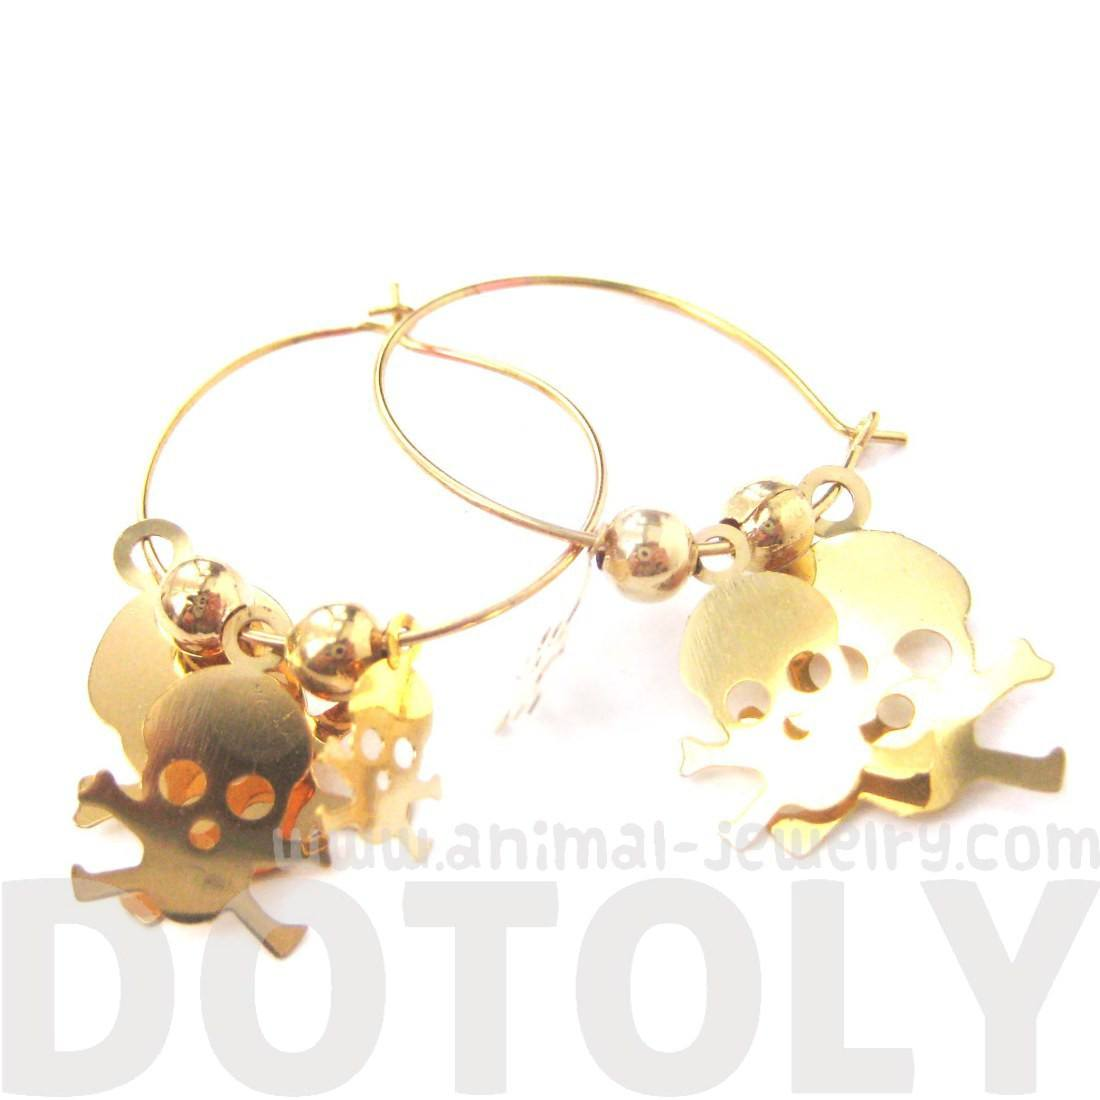 Skeleton Skull Bones Pirate Silhouette Shaped Dangle Hoop Earrings